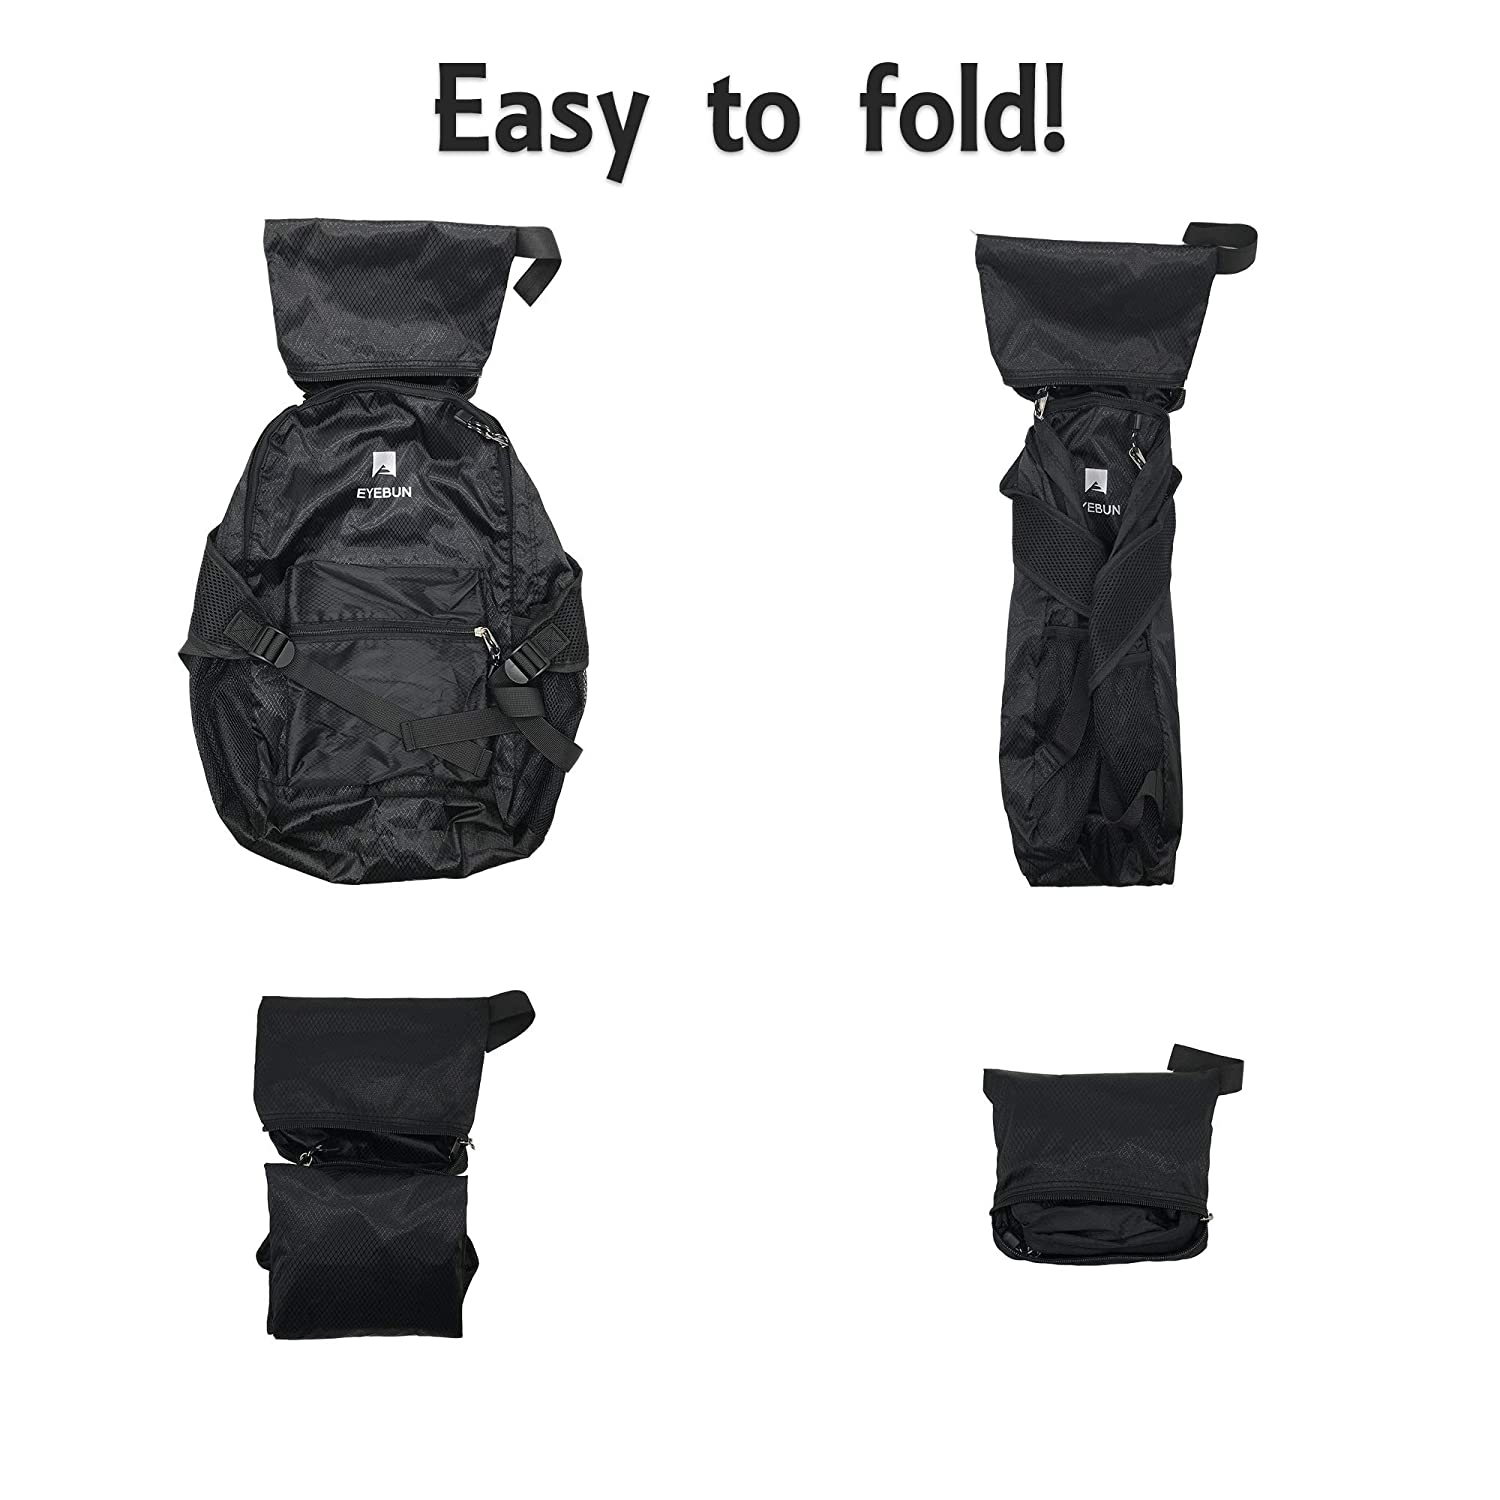 Eyebun 20L Lightweight Packable Travel Hiking Camping Beach Daypack Water Resistant Outdoor Daily Foldable Backpack